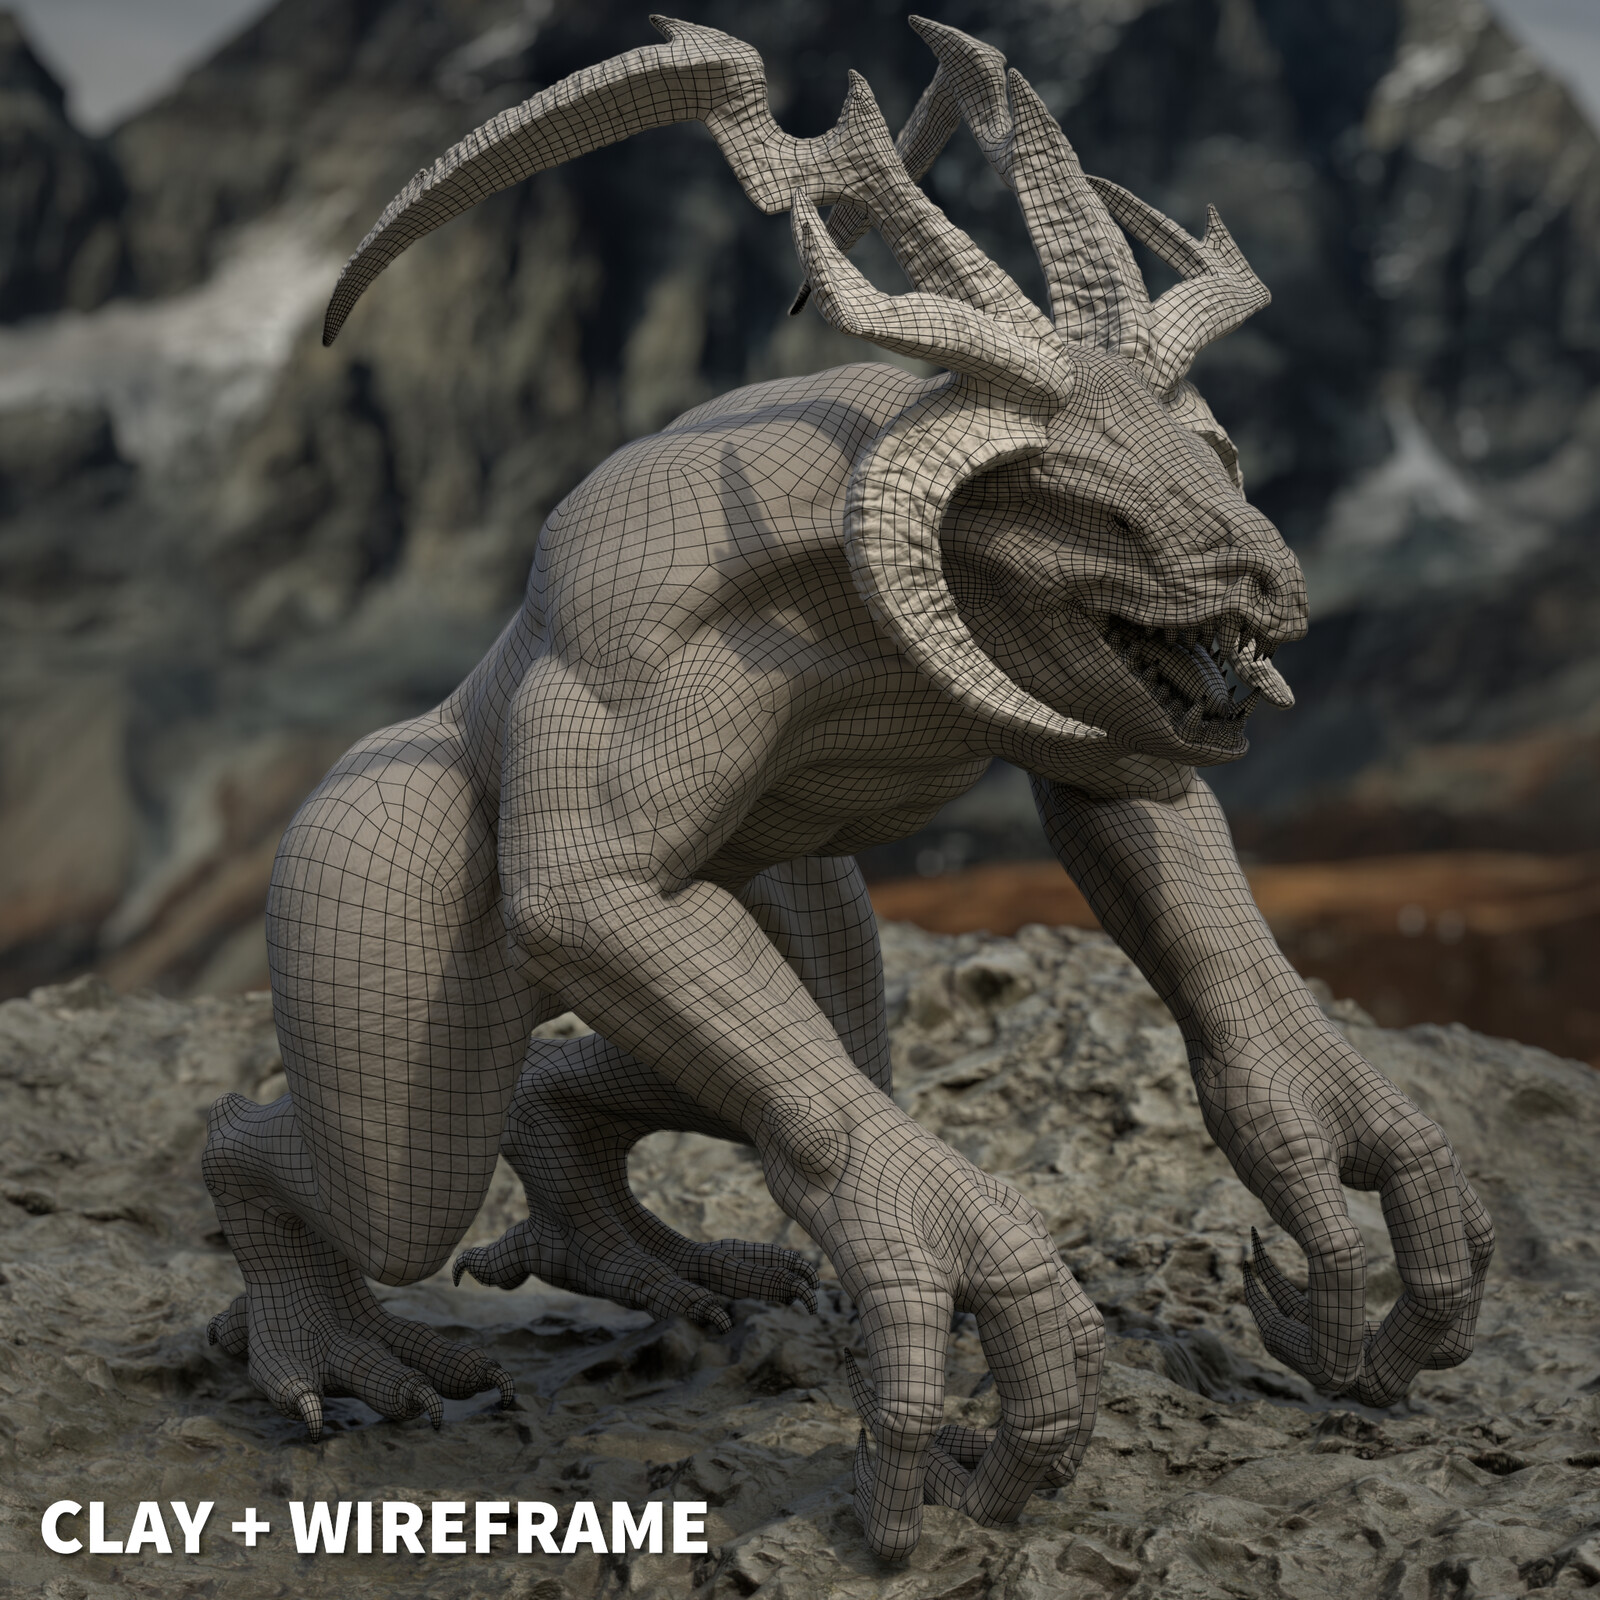 Clay + Wireframe